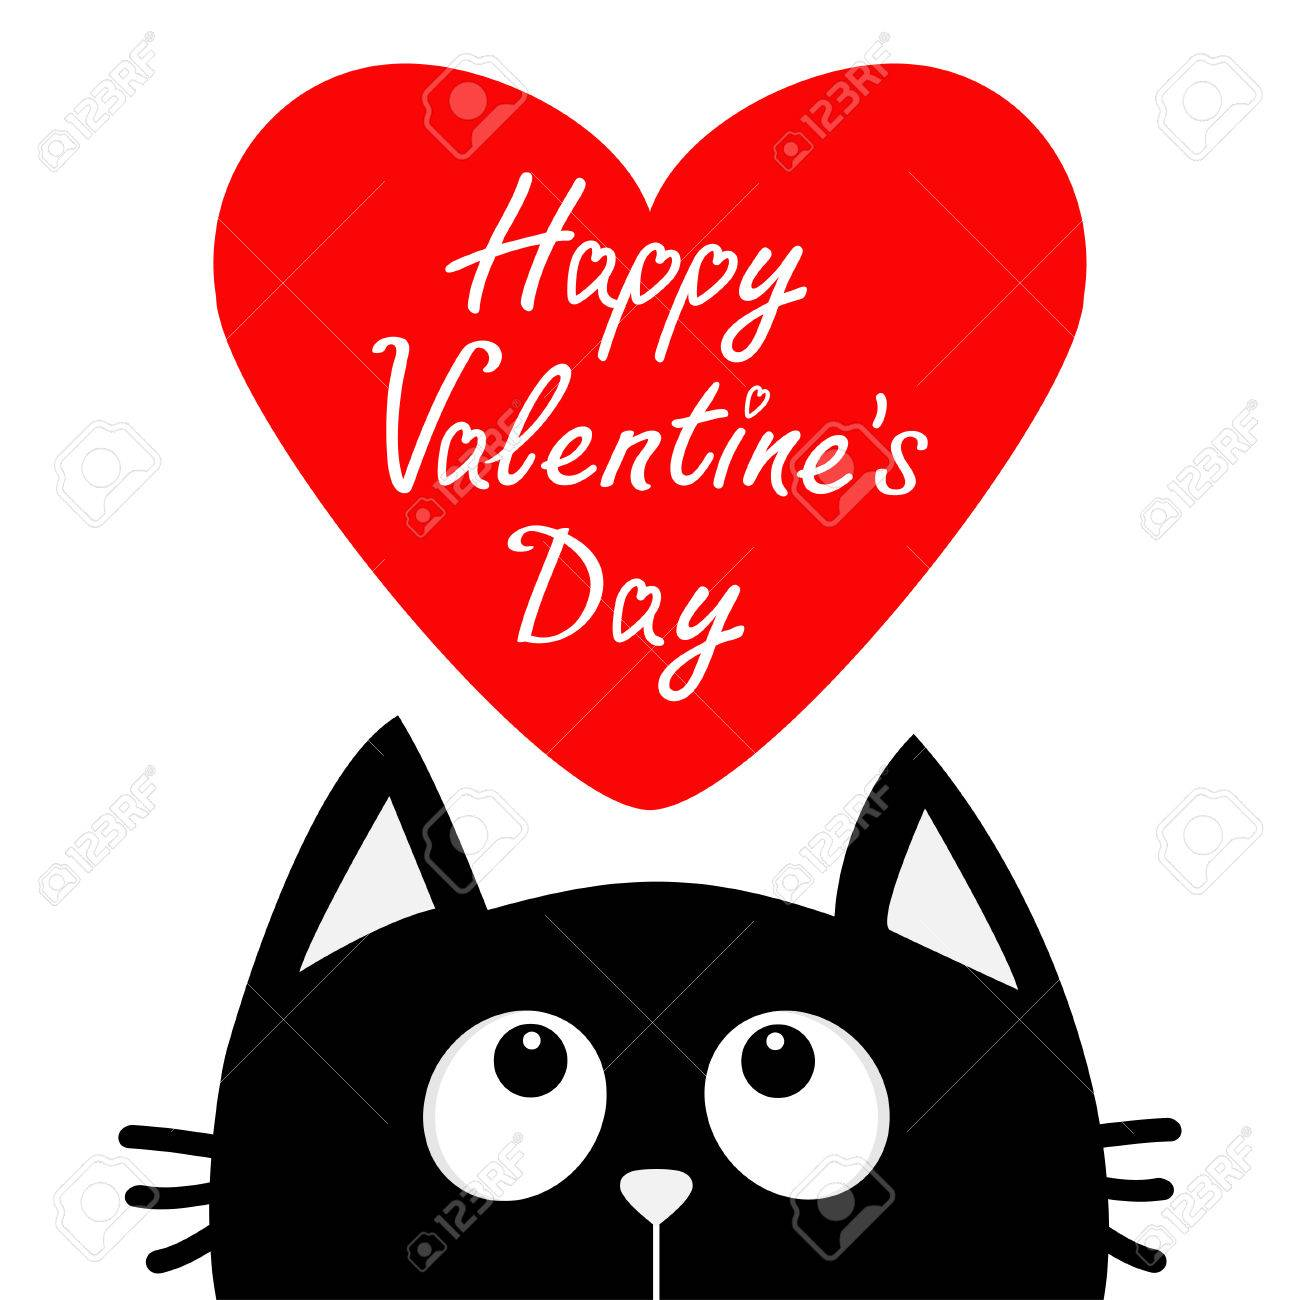 Happy Valentines Day Black Cat Looking Up To Big Red Heart